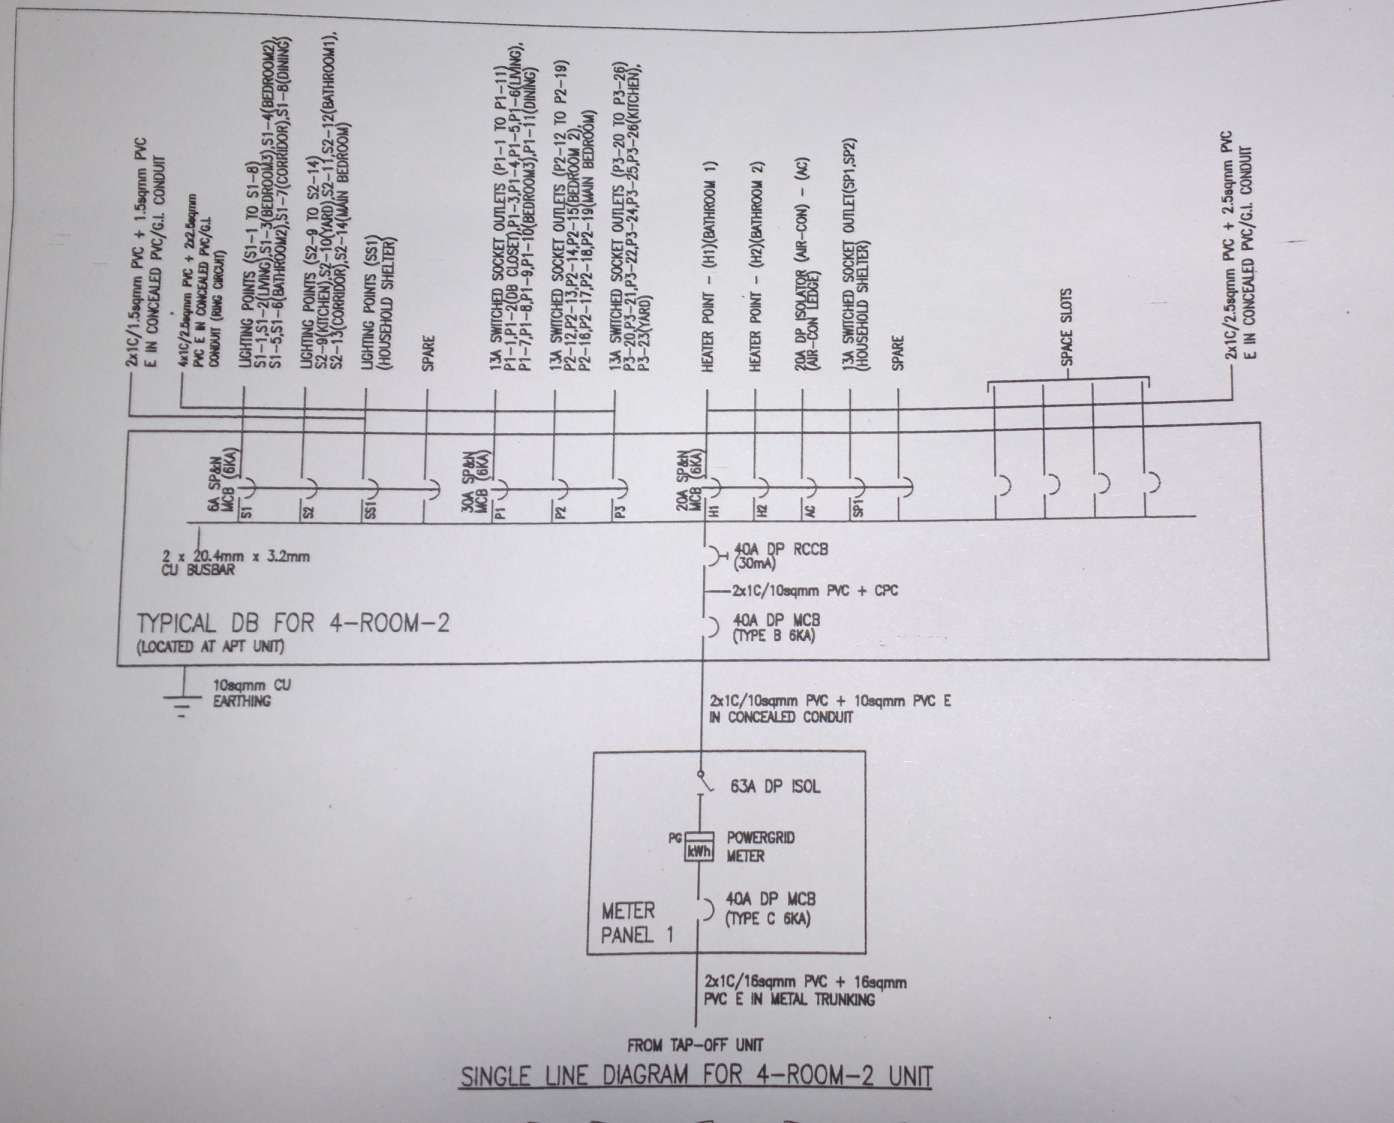 17 Hdb Electrical Wiring Diagram Wiring Diagram In 2020 With